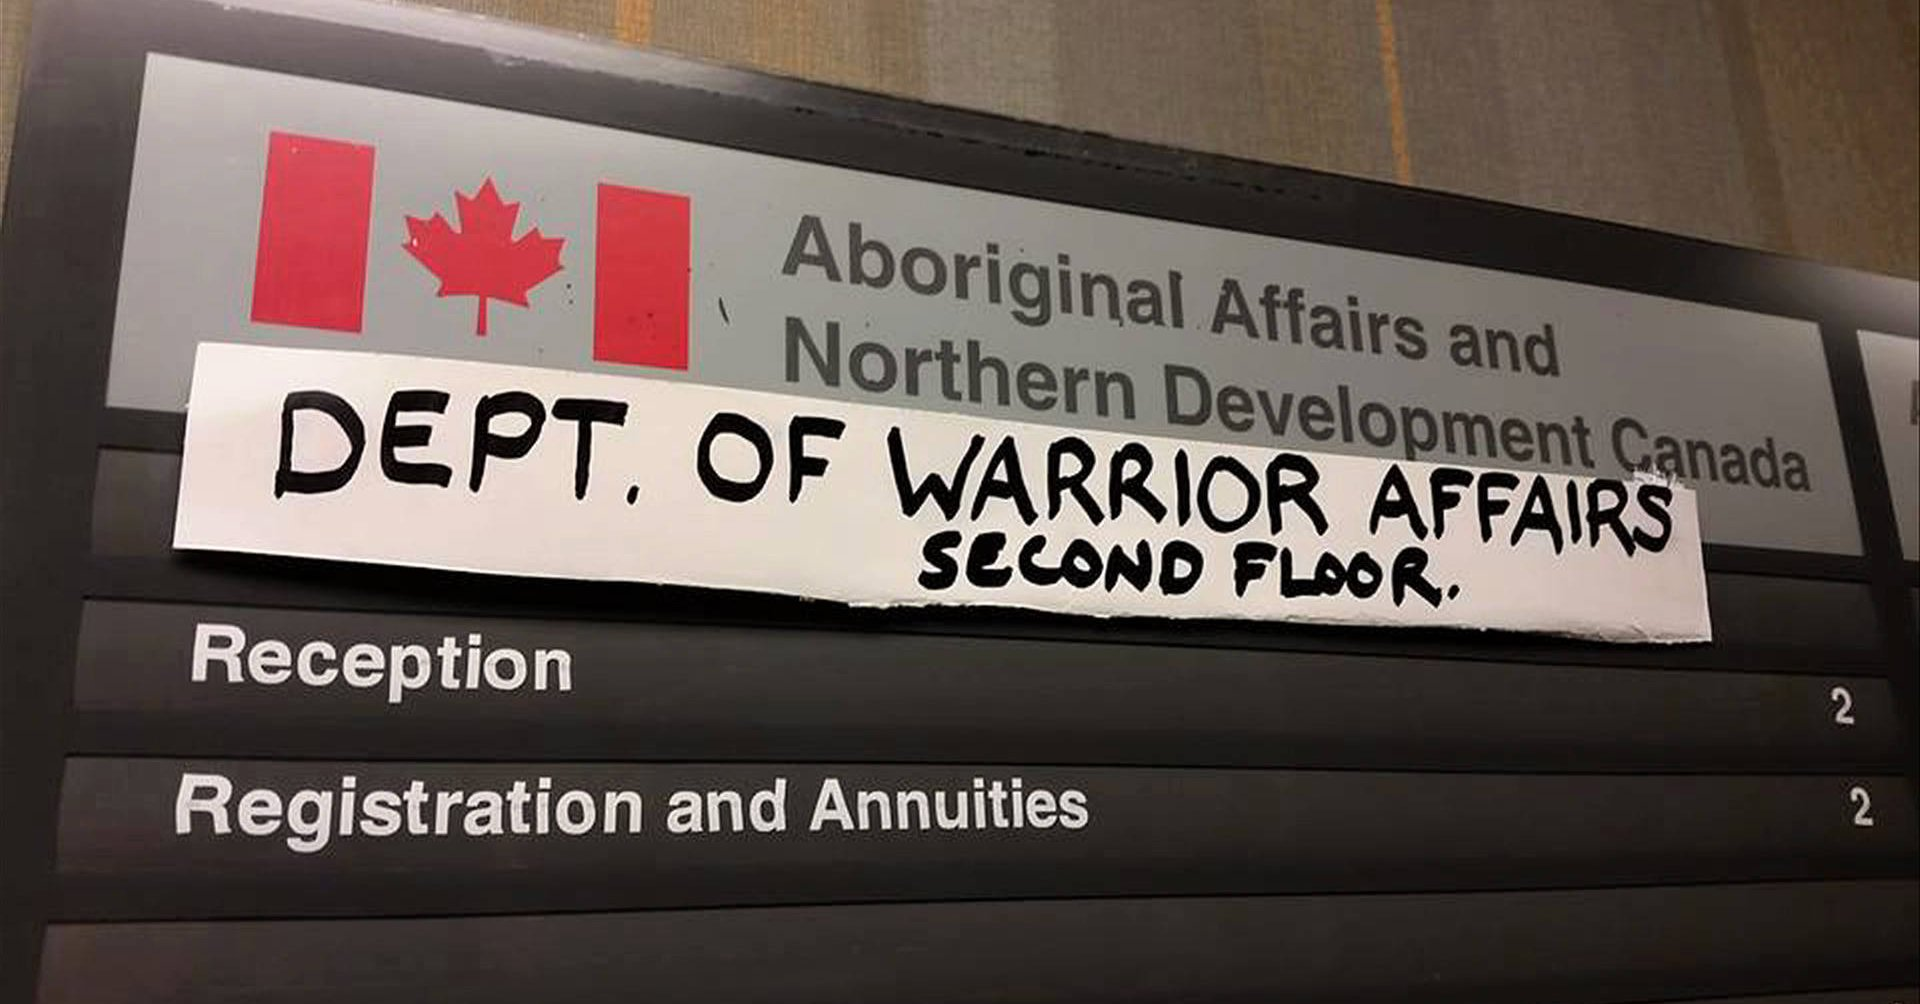 Dept of Warrior Affairs